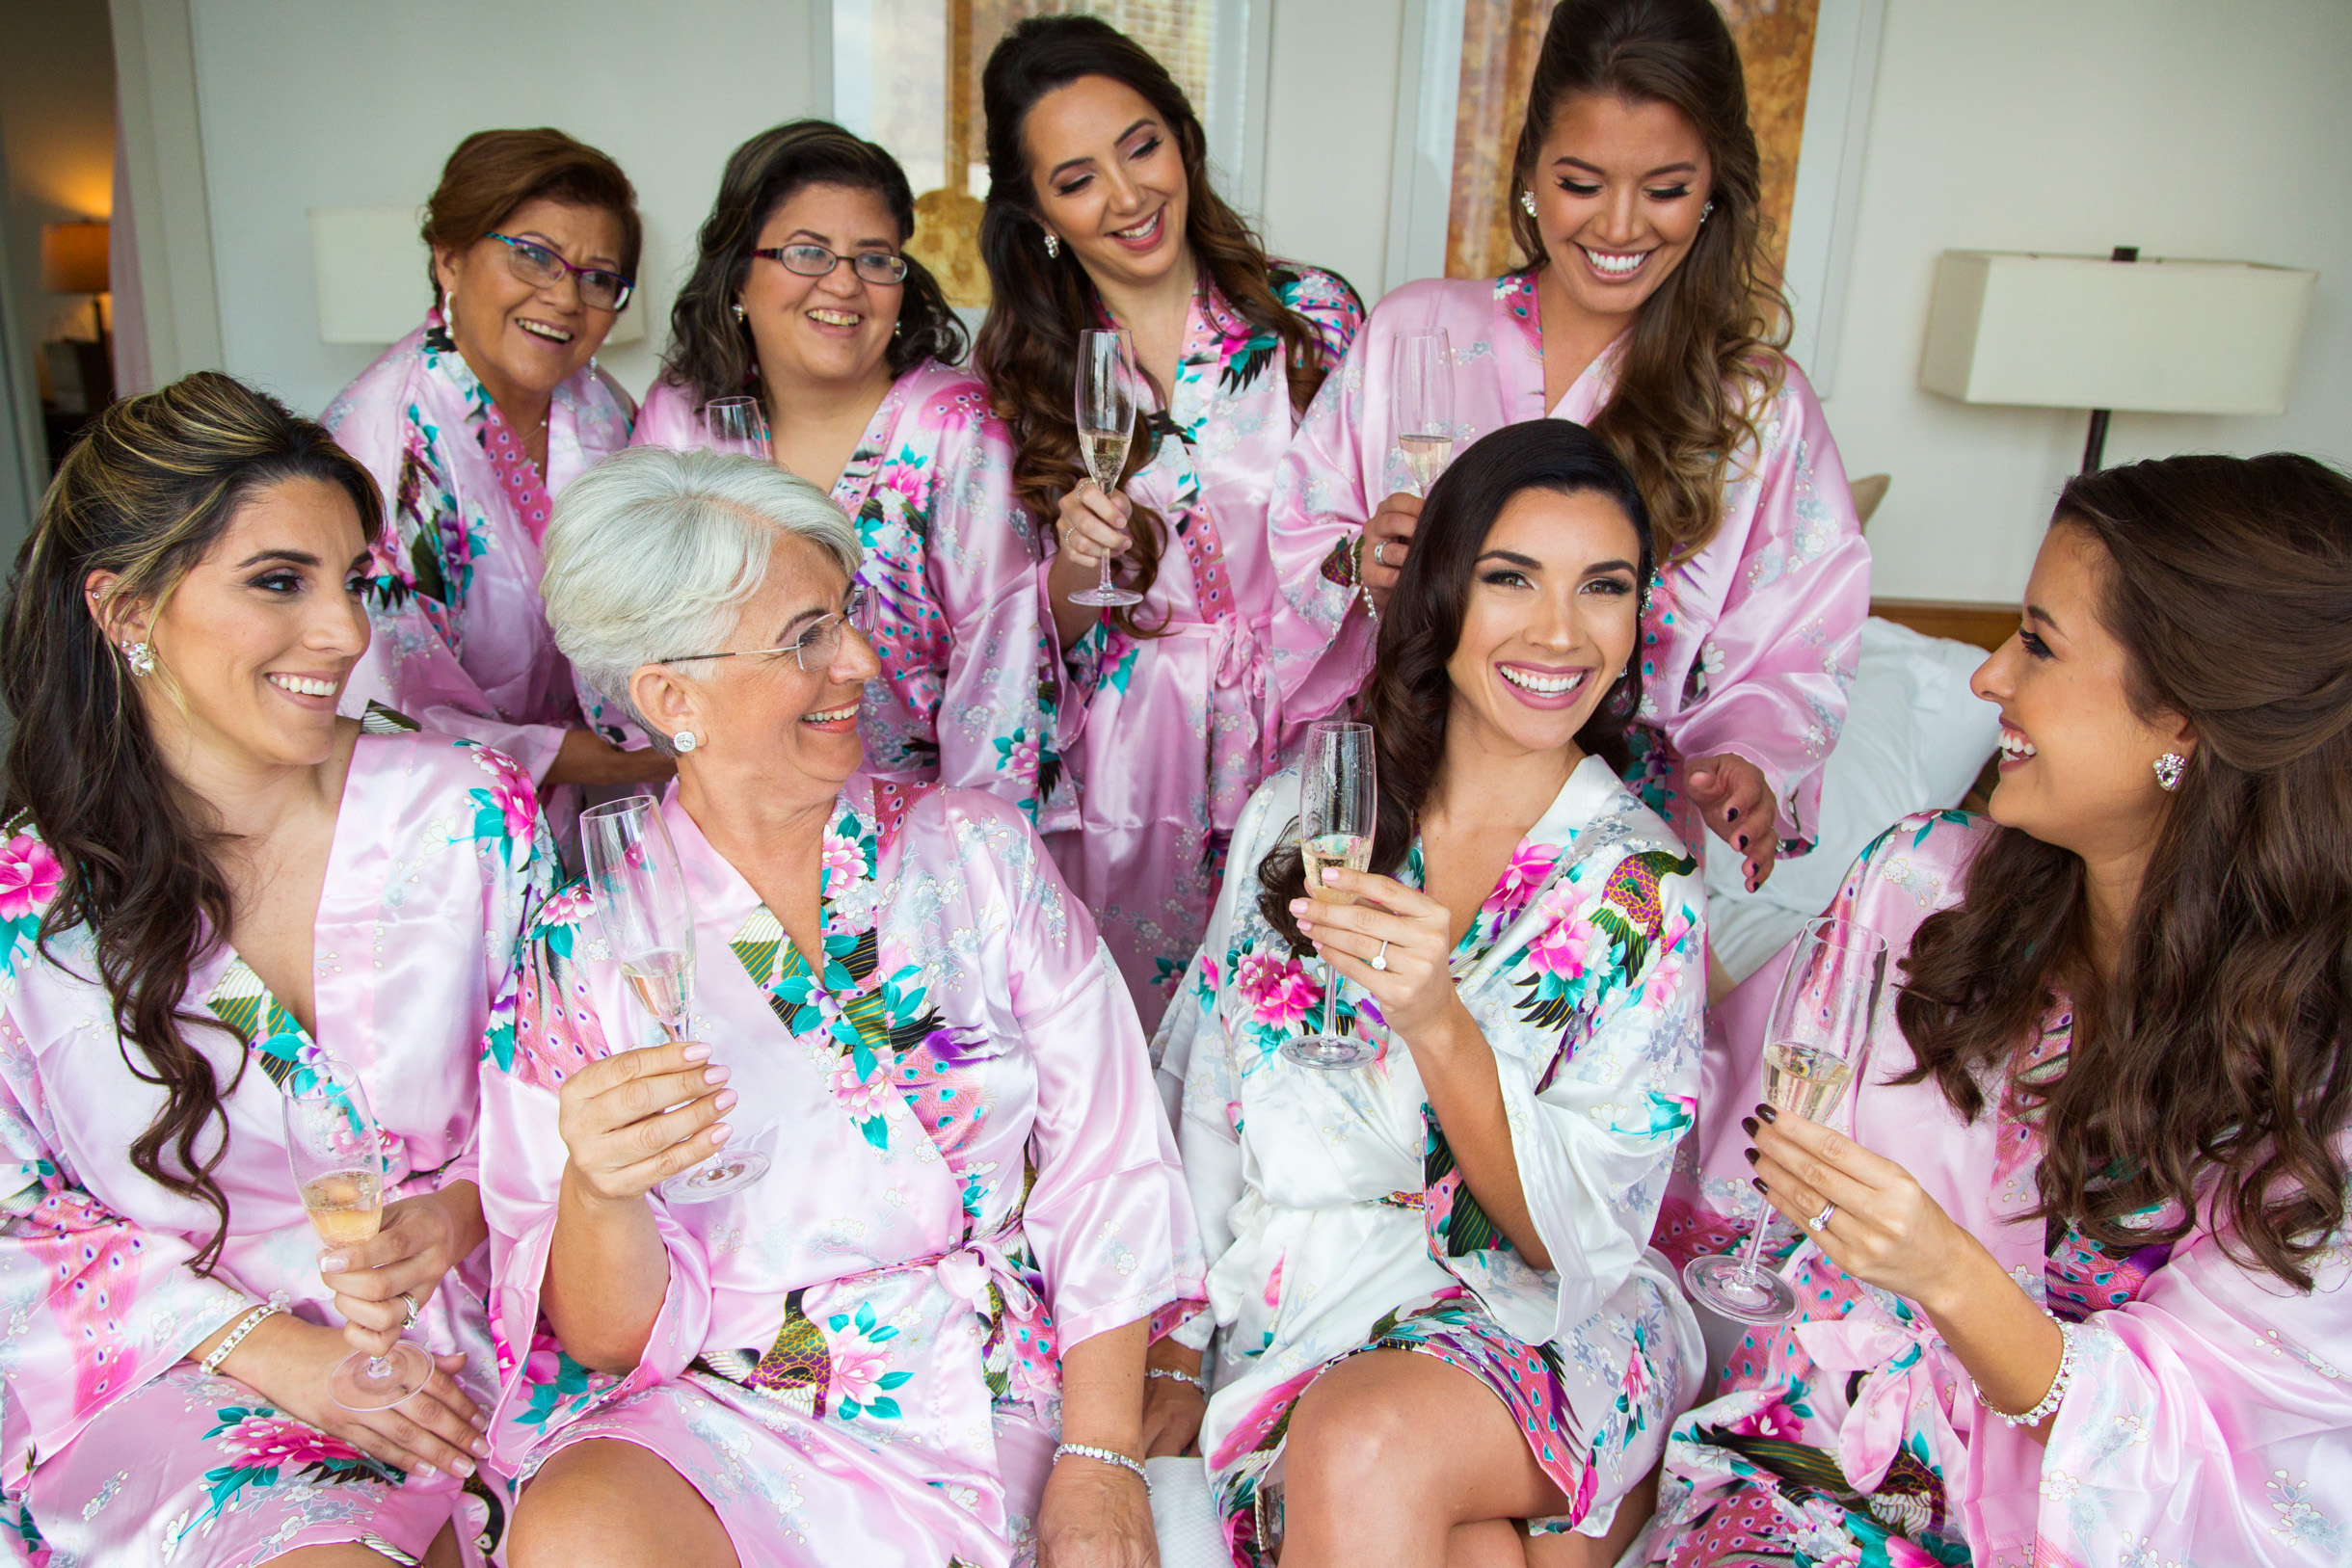 Wedding inspiration photo of bride and bridesmaids posing in their pink robes